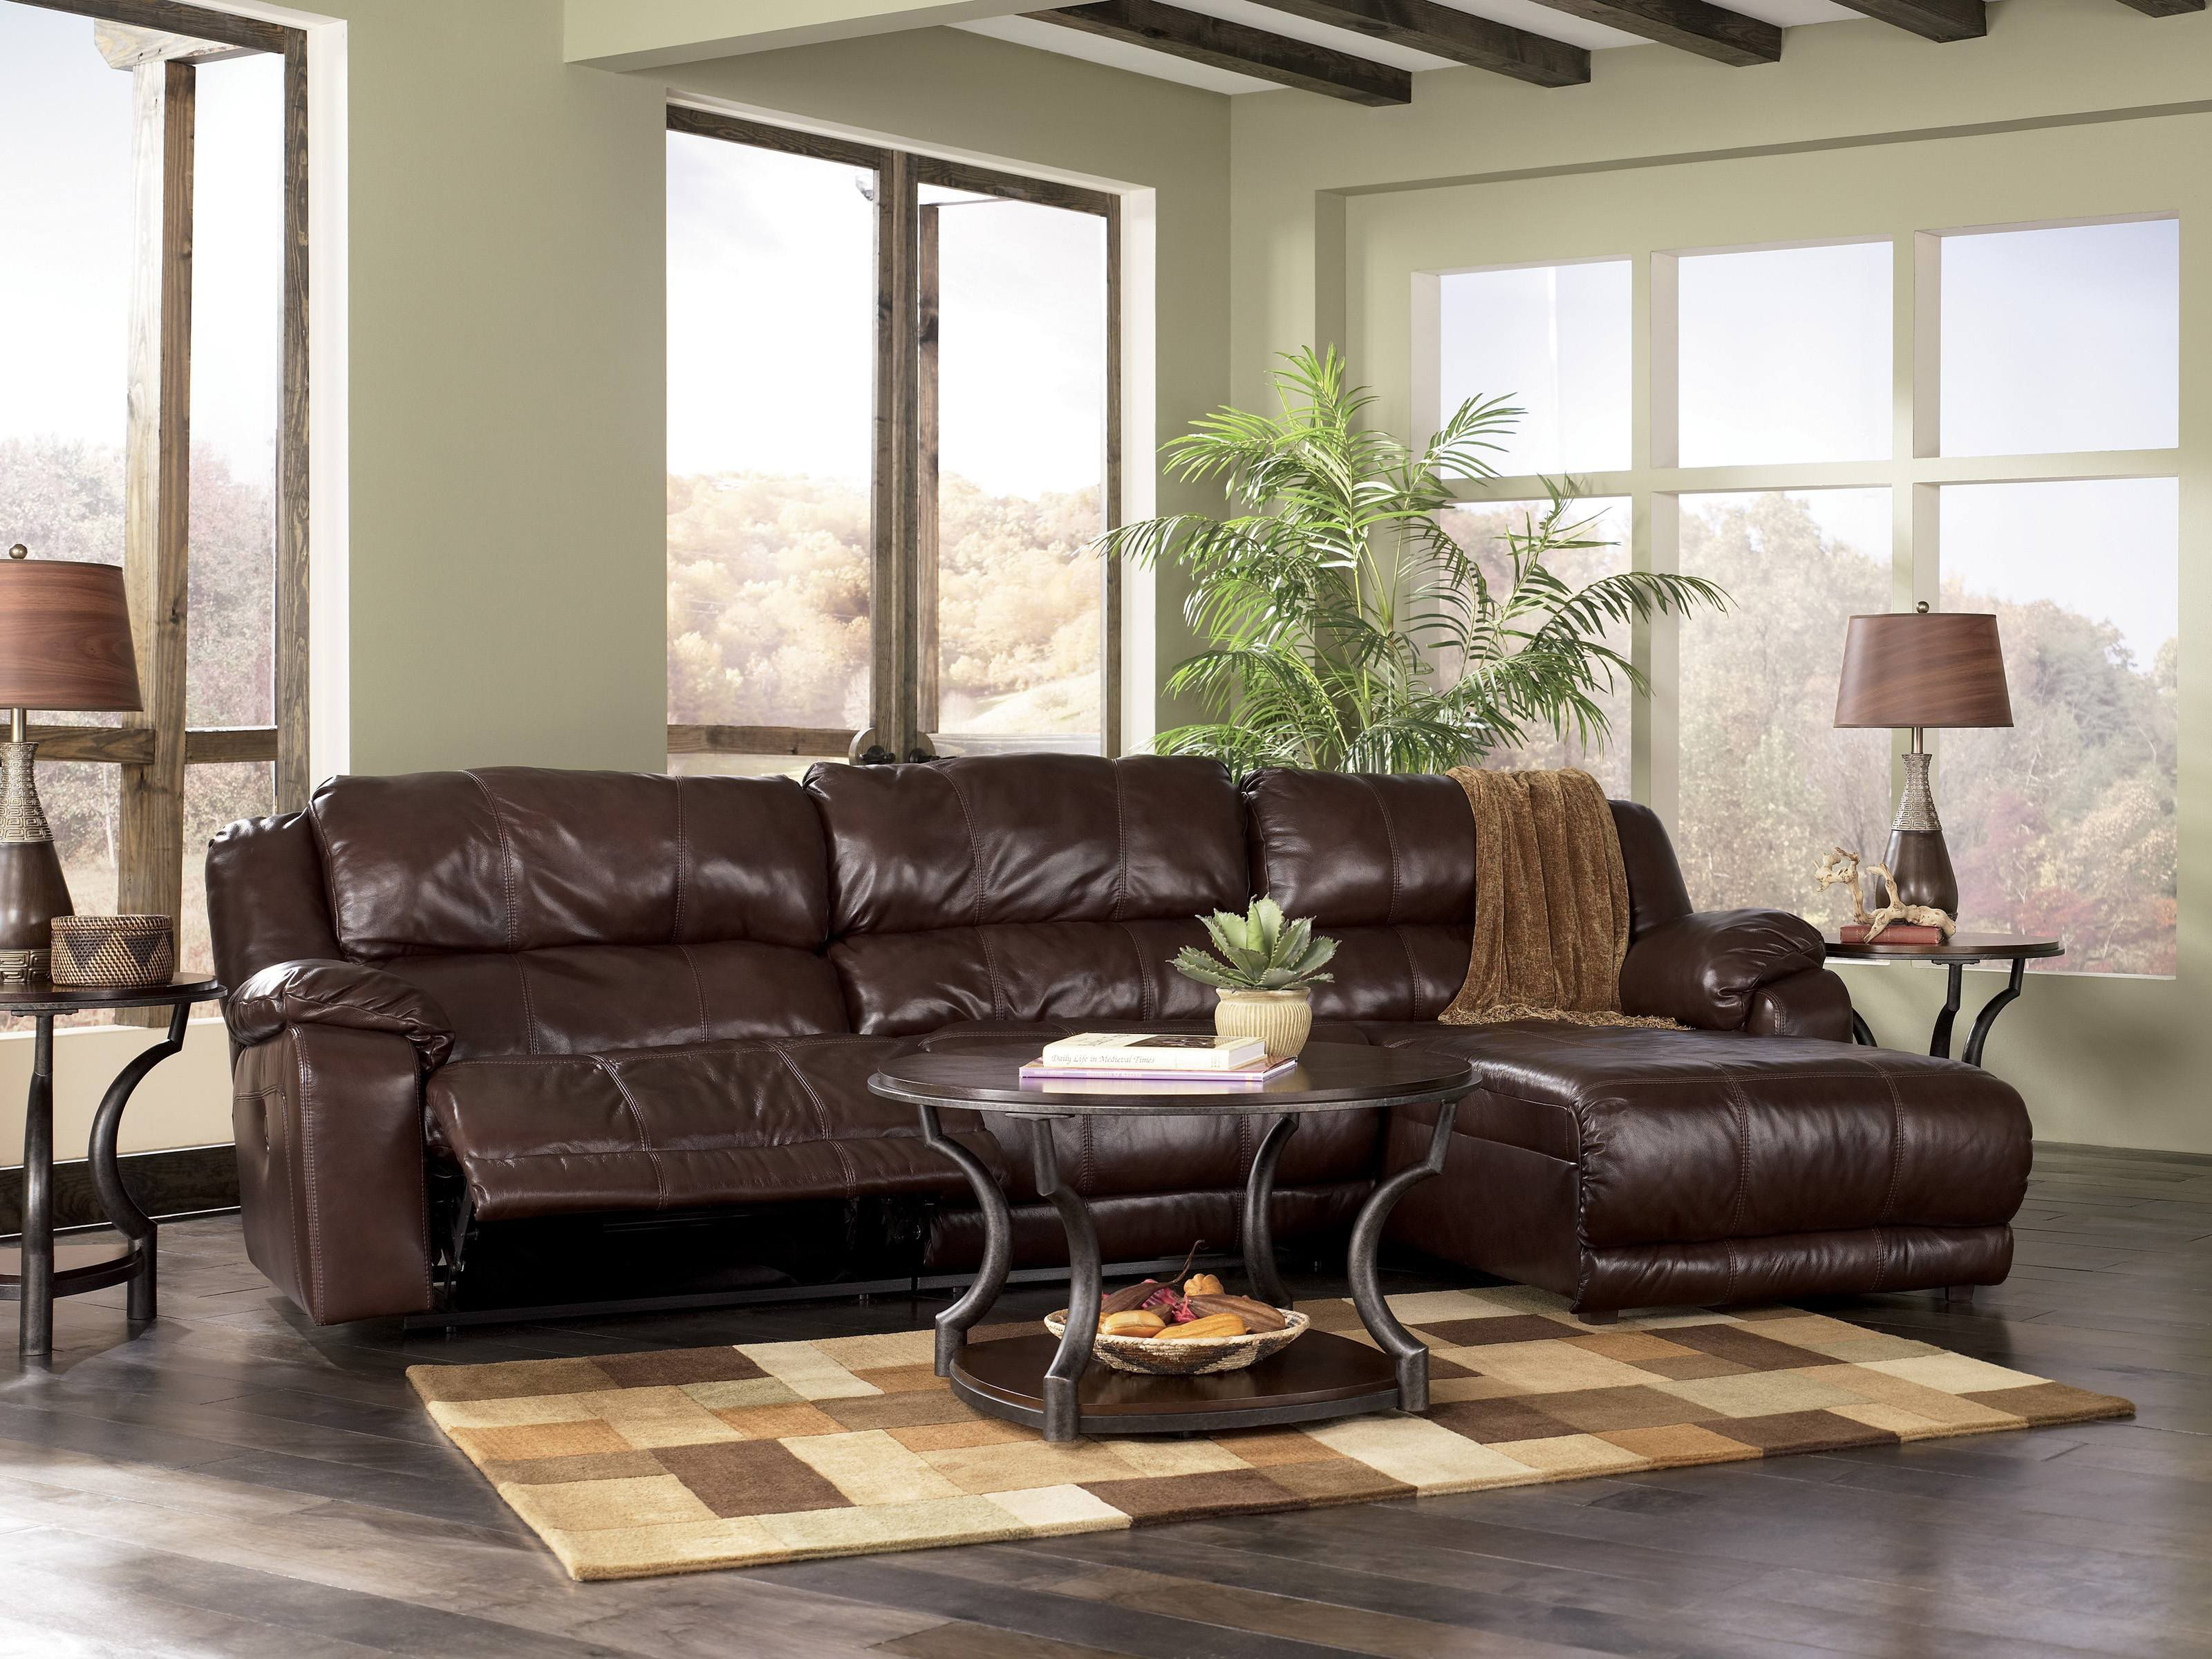 delta recliners sofas chaise reclining original sectional sectionals types with and